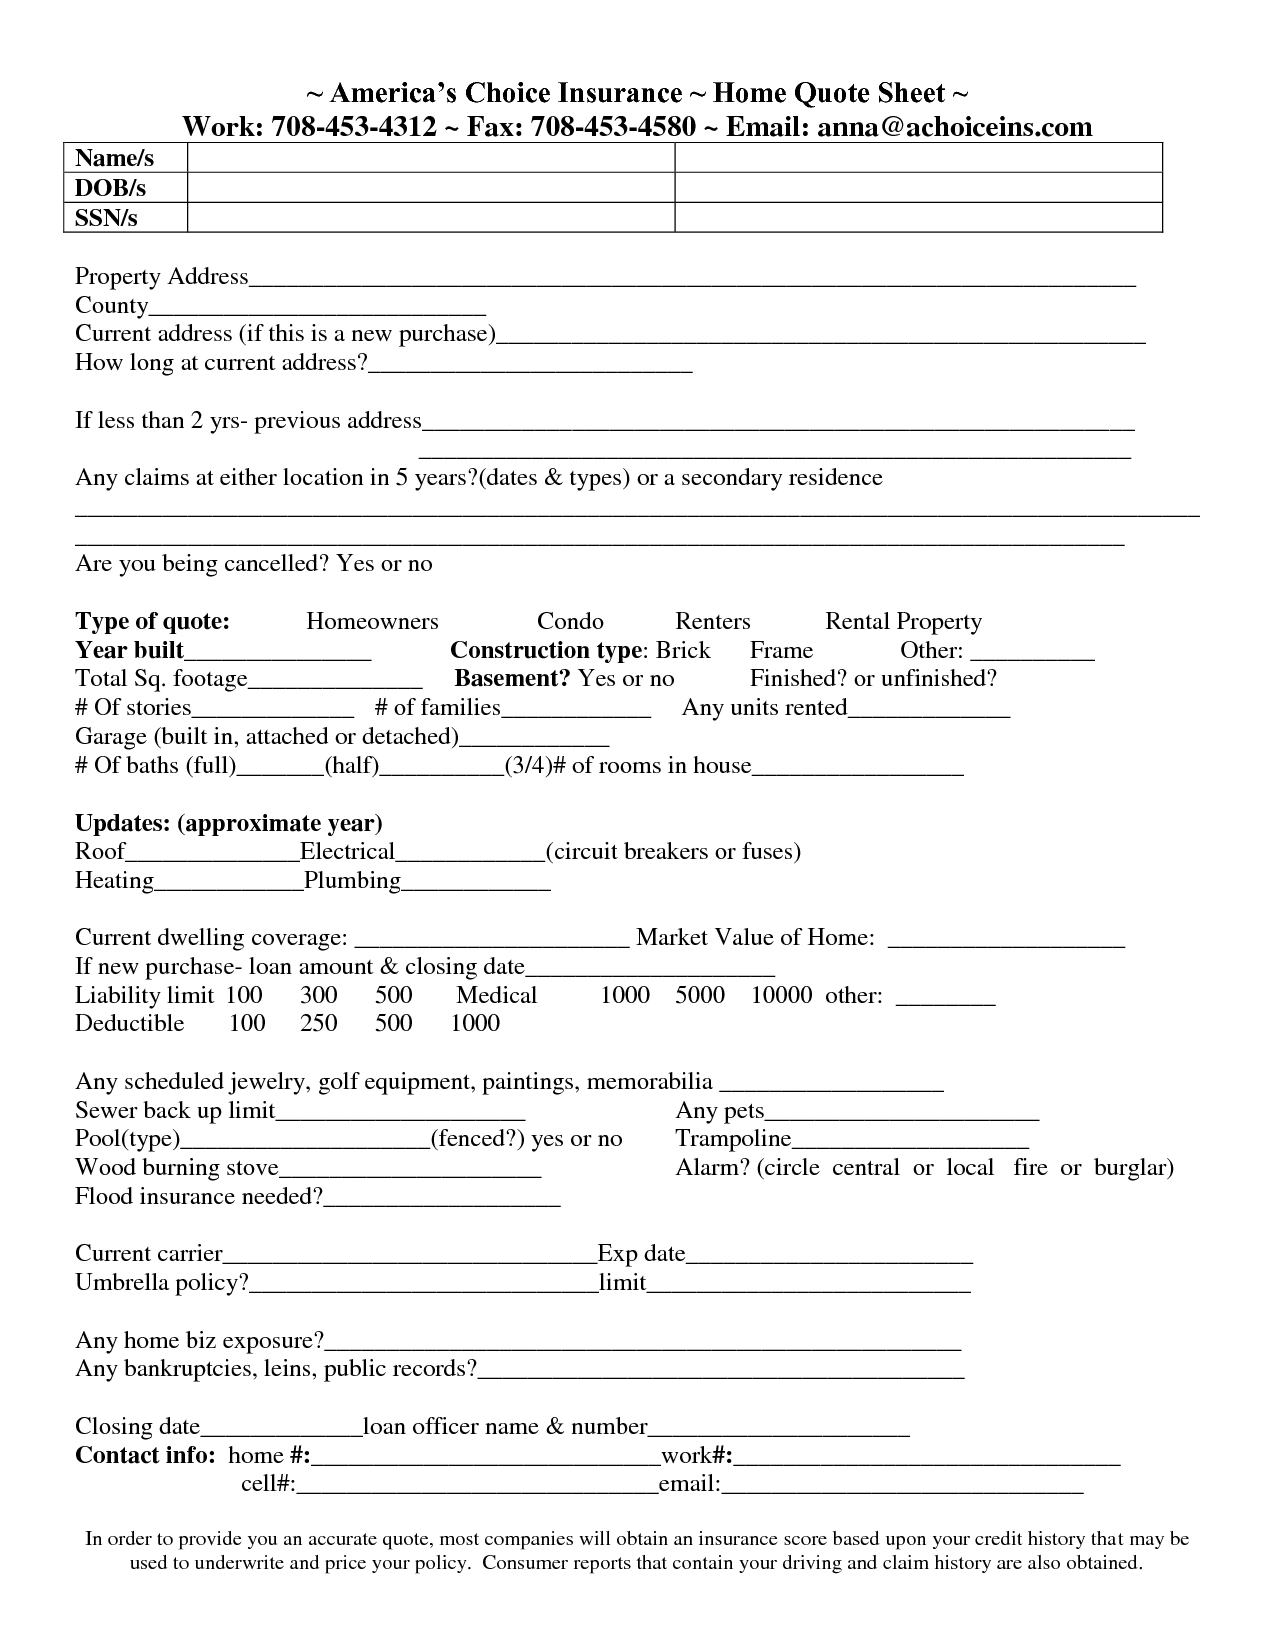 Auto Insurance Quote Forms - 44billionlater